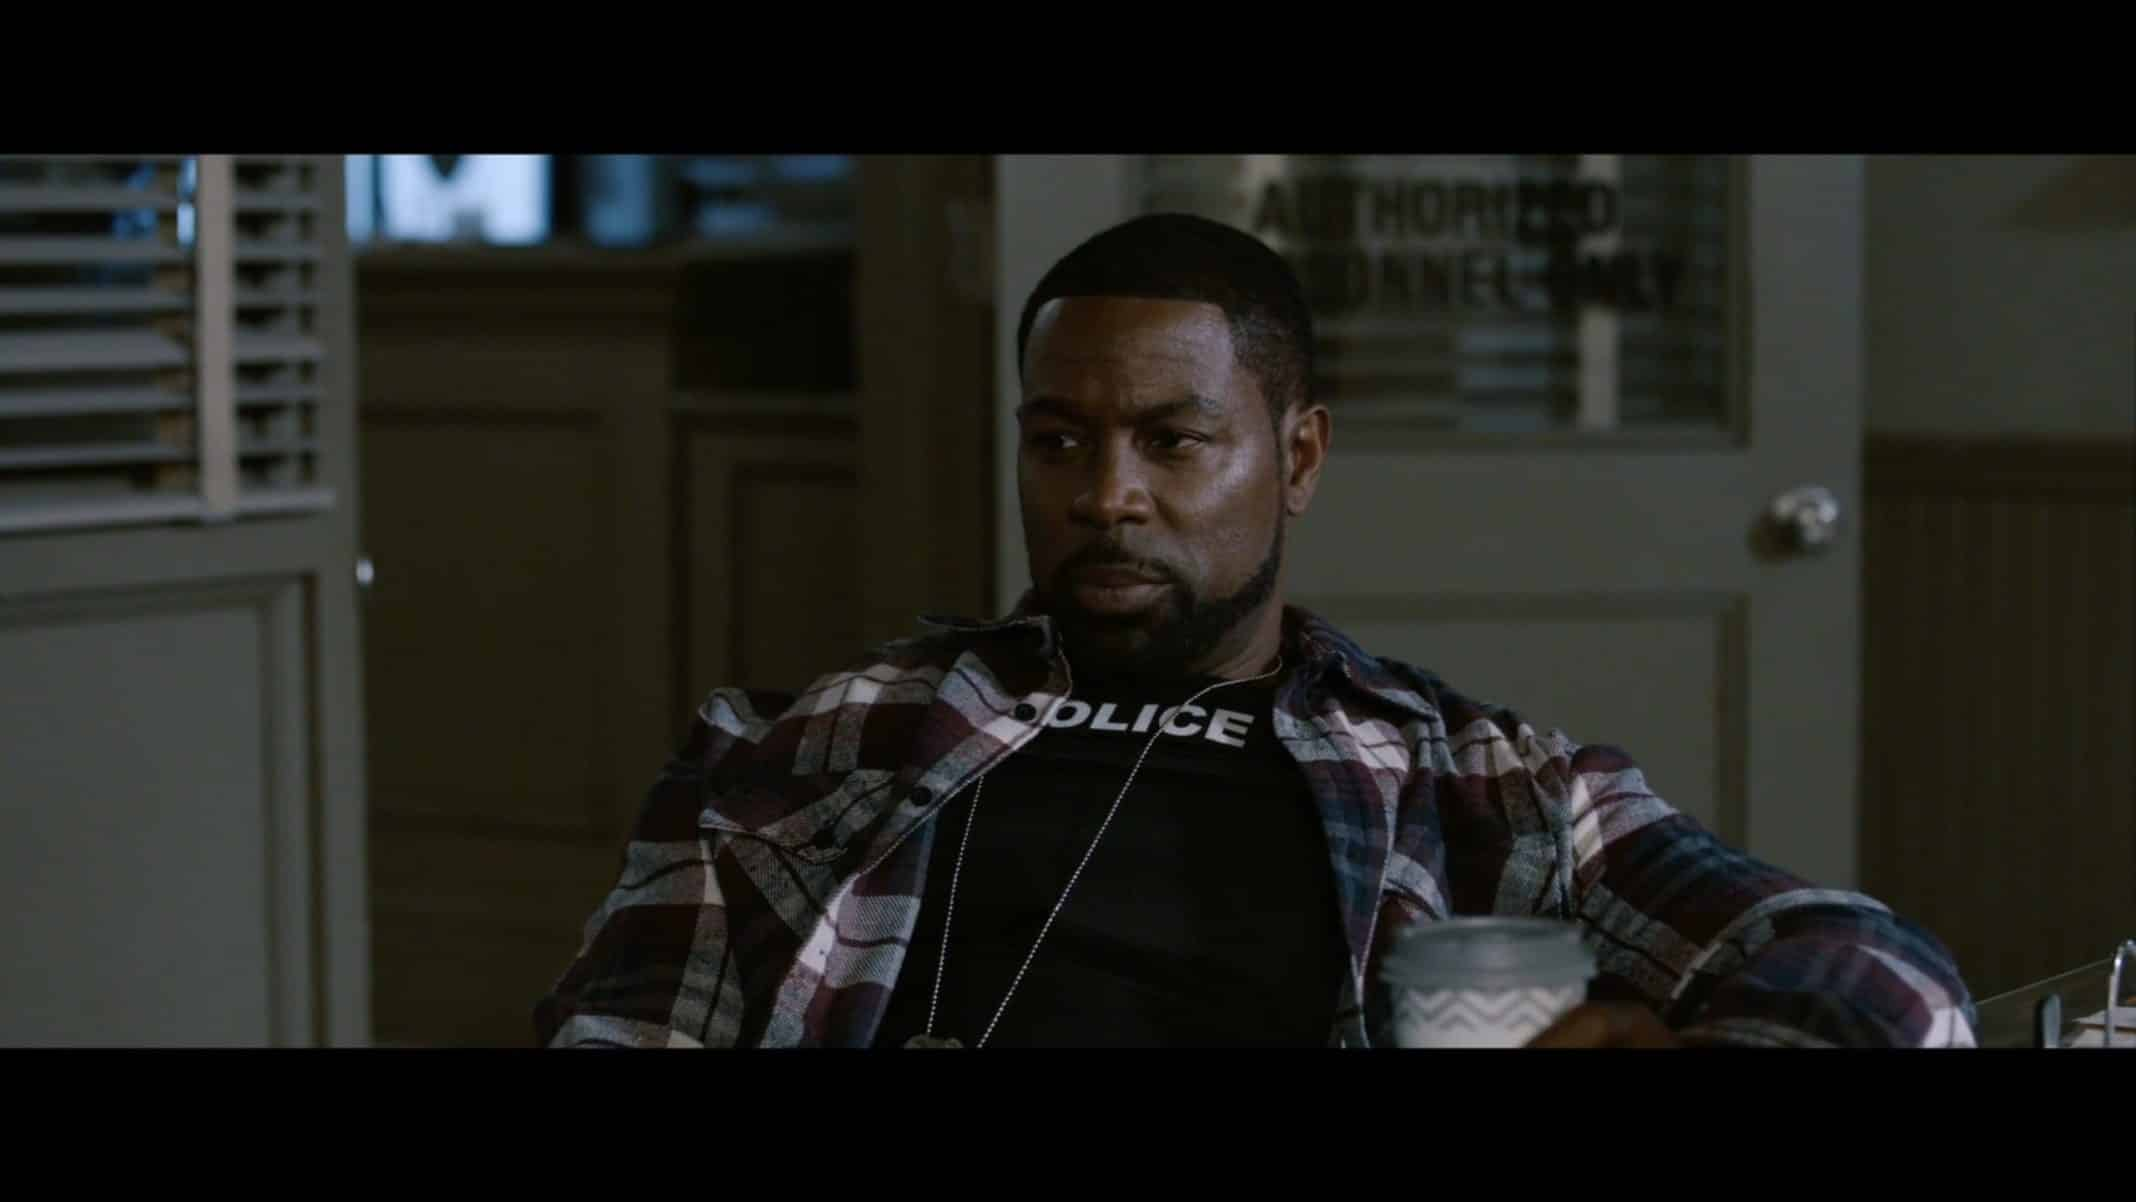 Detective Ryan (Darrin Dewitt Henson) at the police precinct.